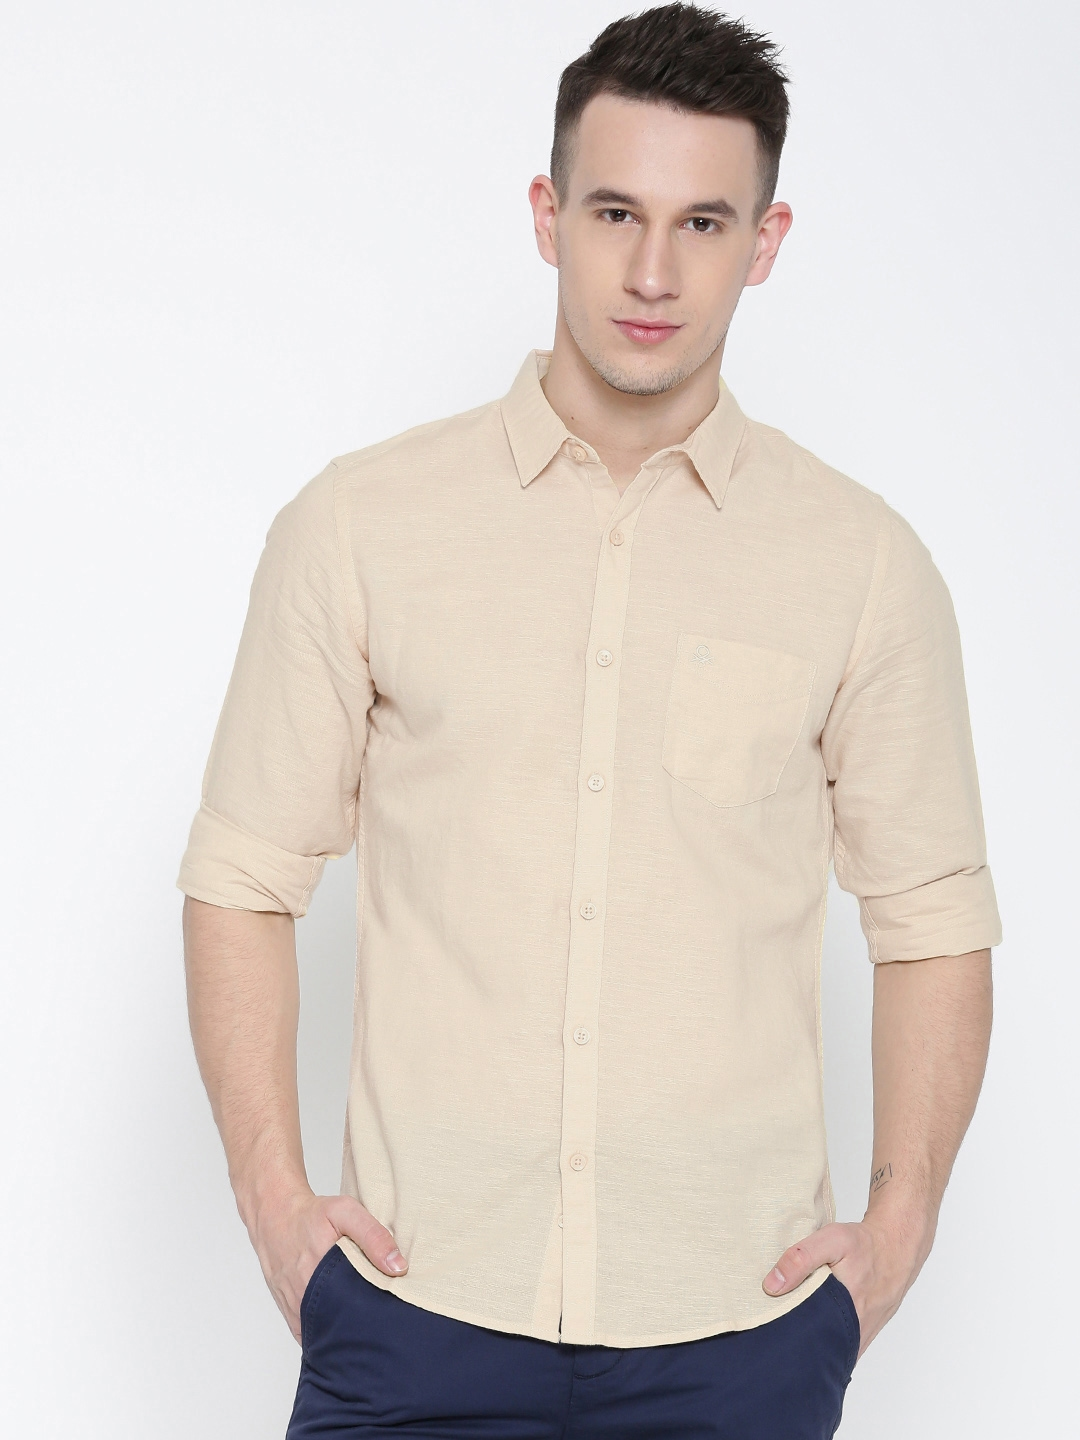 United Colors of Benetton Men Beige Solid Casual Shirt